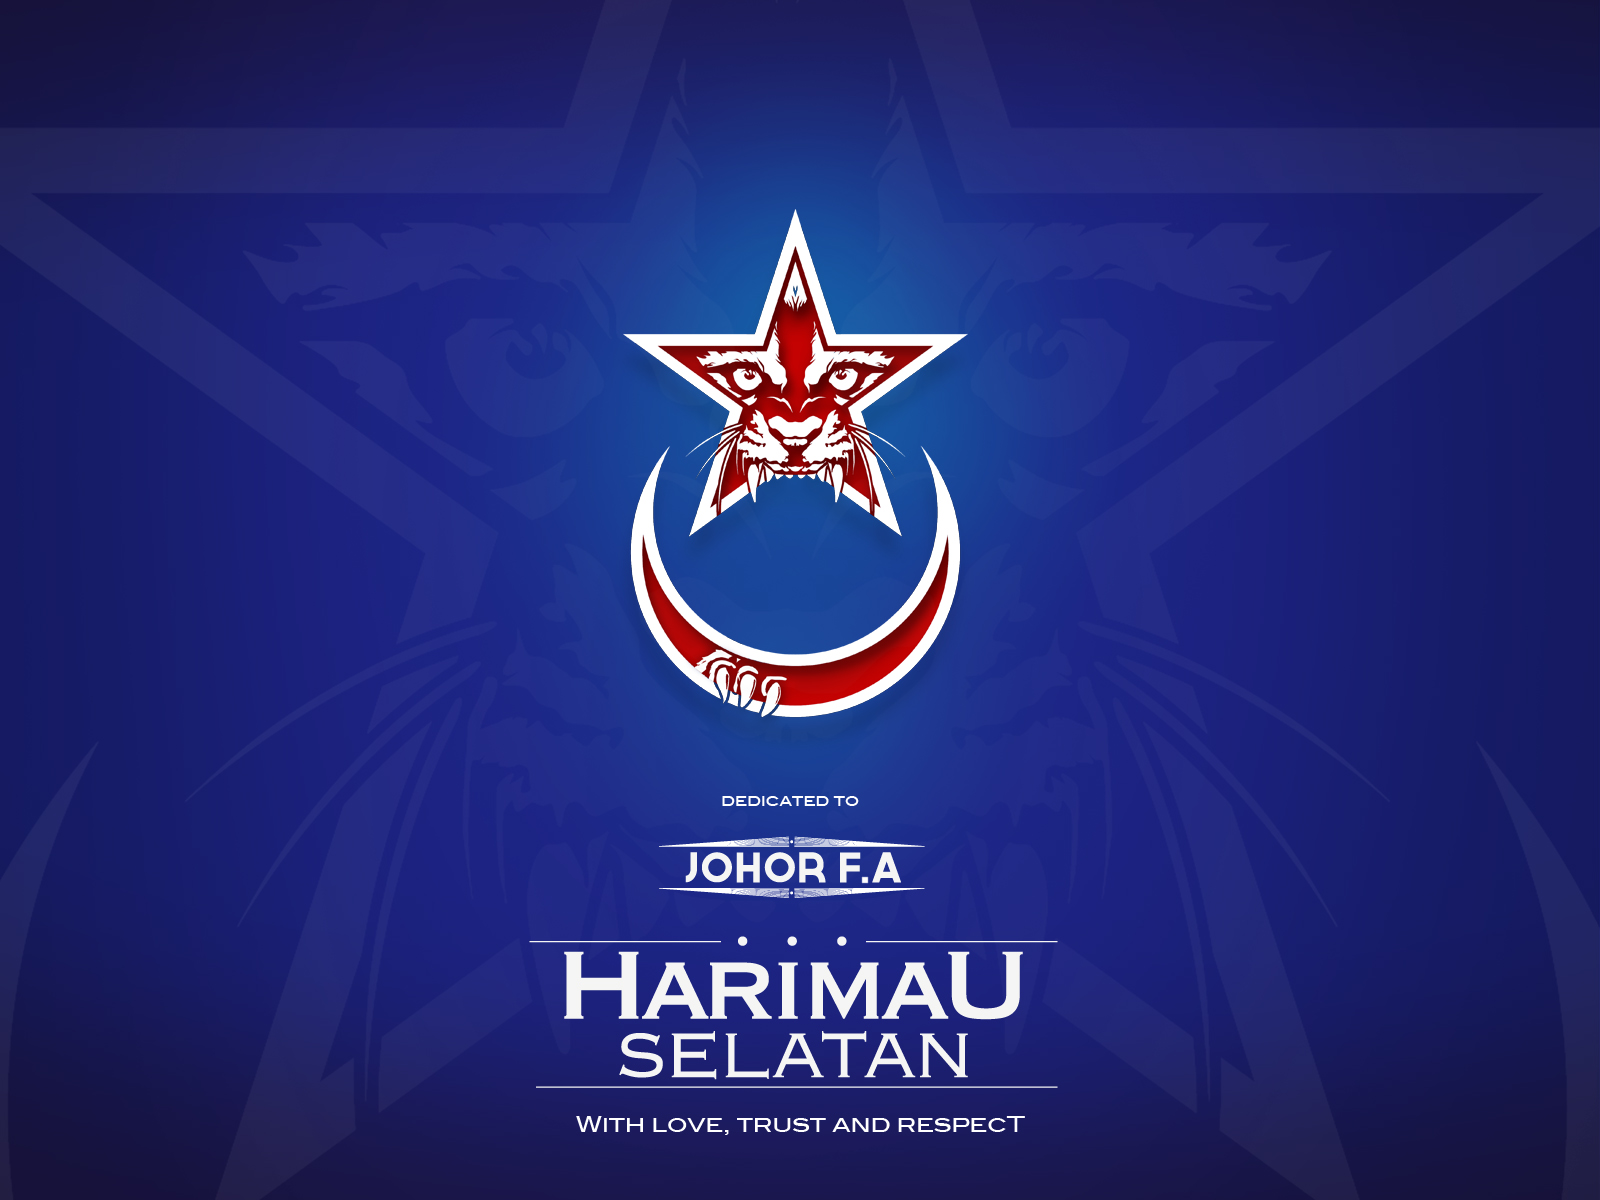 Harimau Selatan Dedication Wallpaper 2012